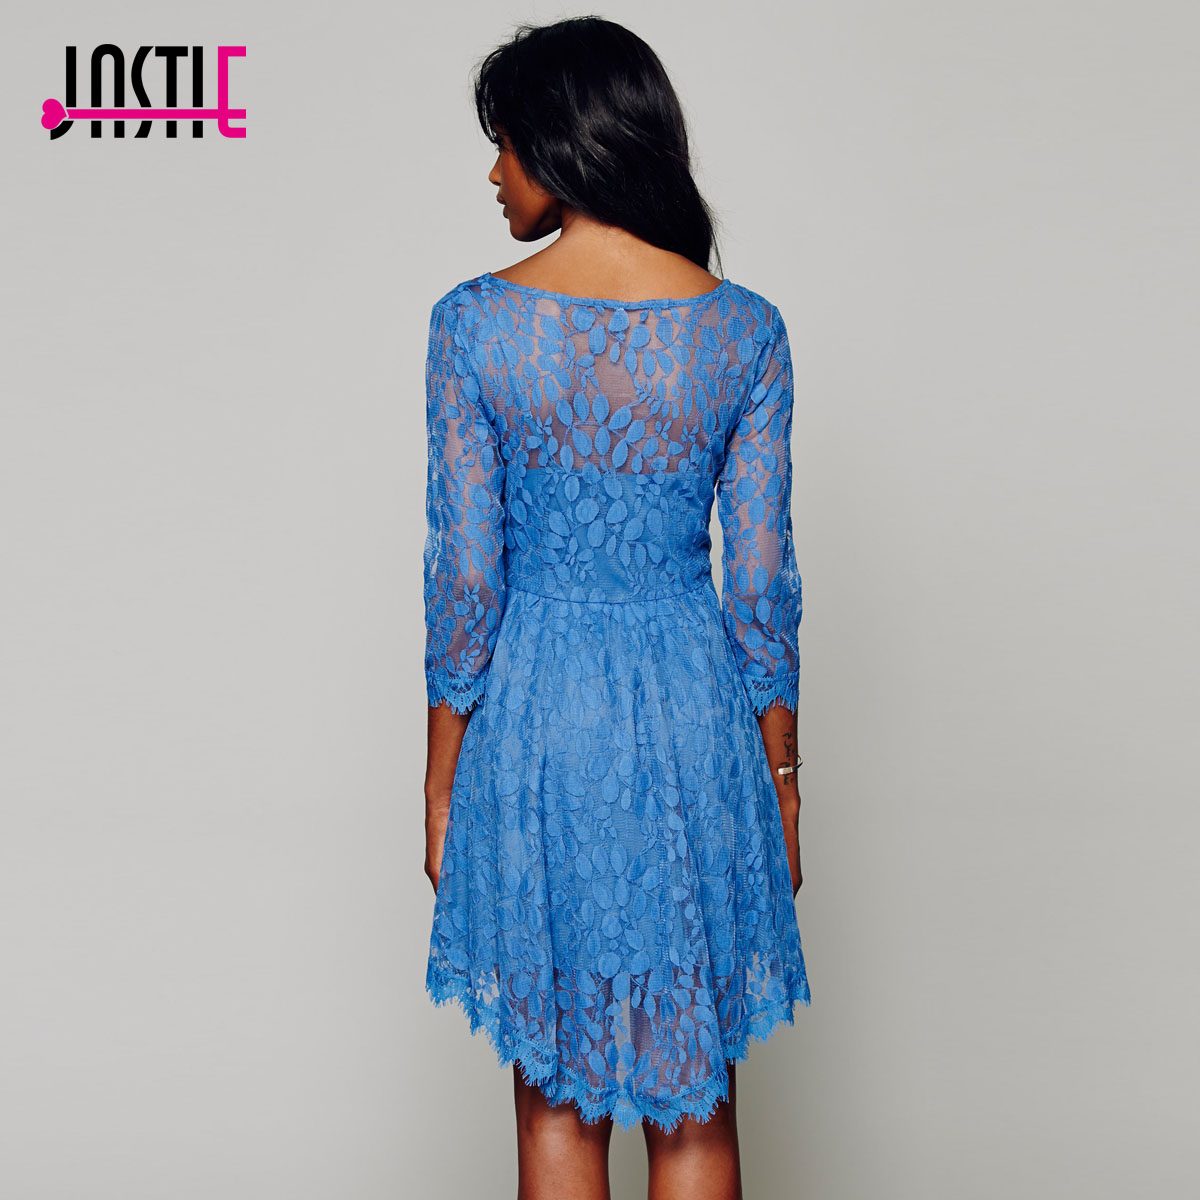 Jastie Floral Mesh Summer Style Boho Hippie Embroidery